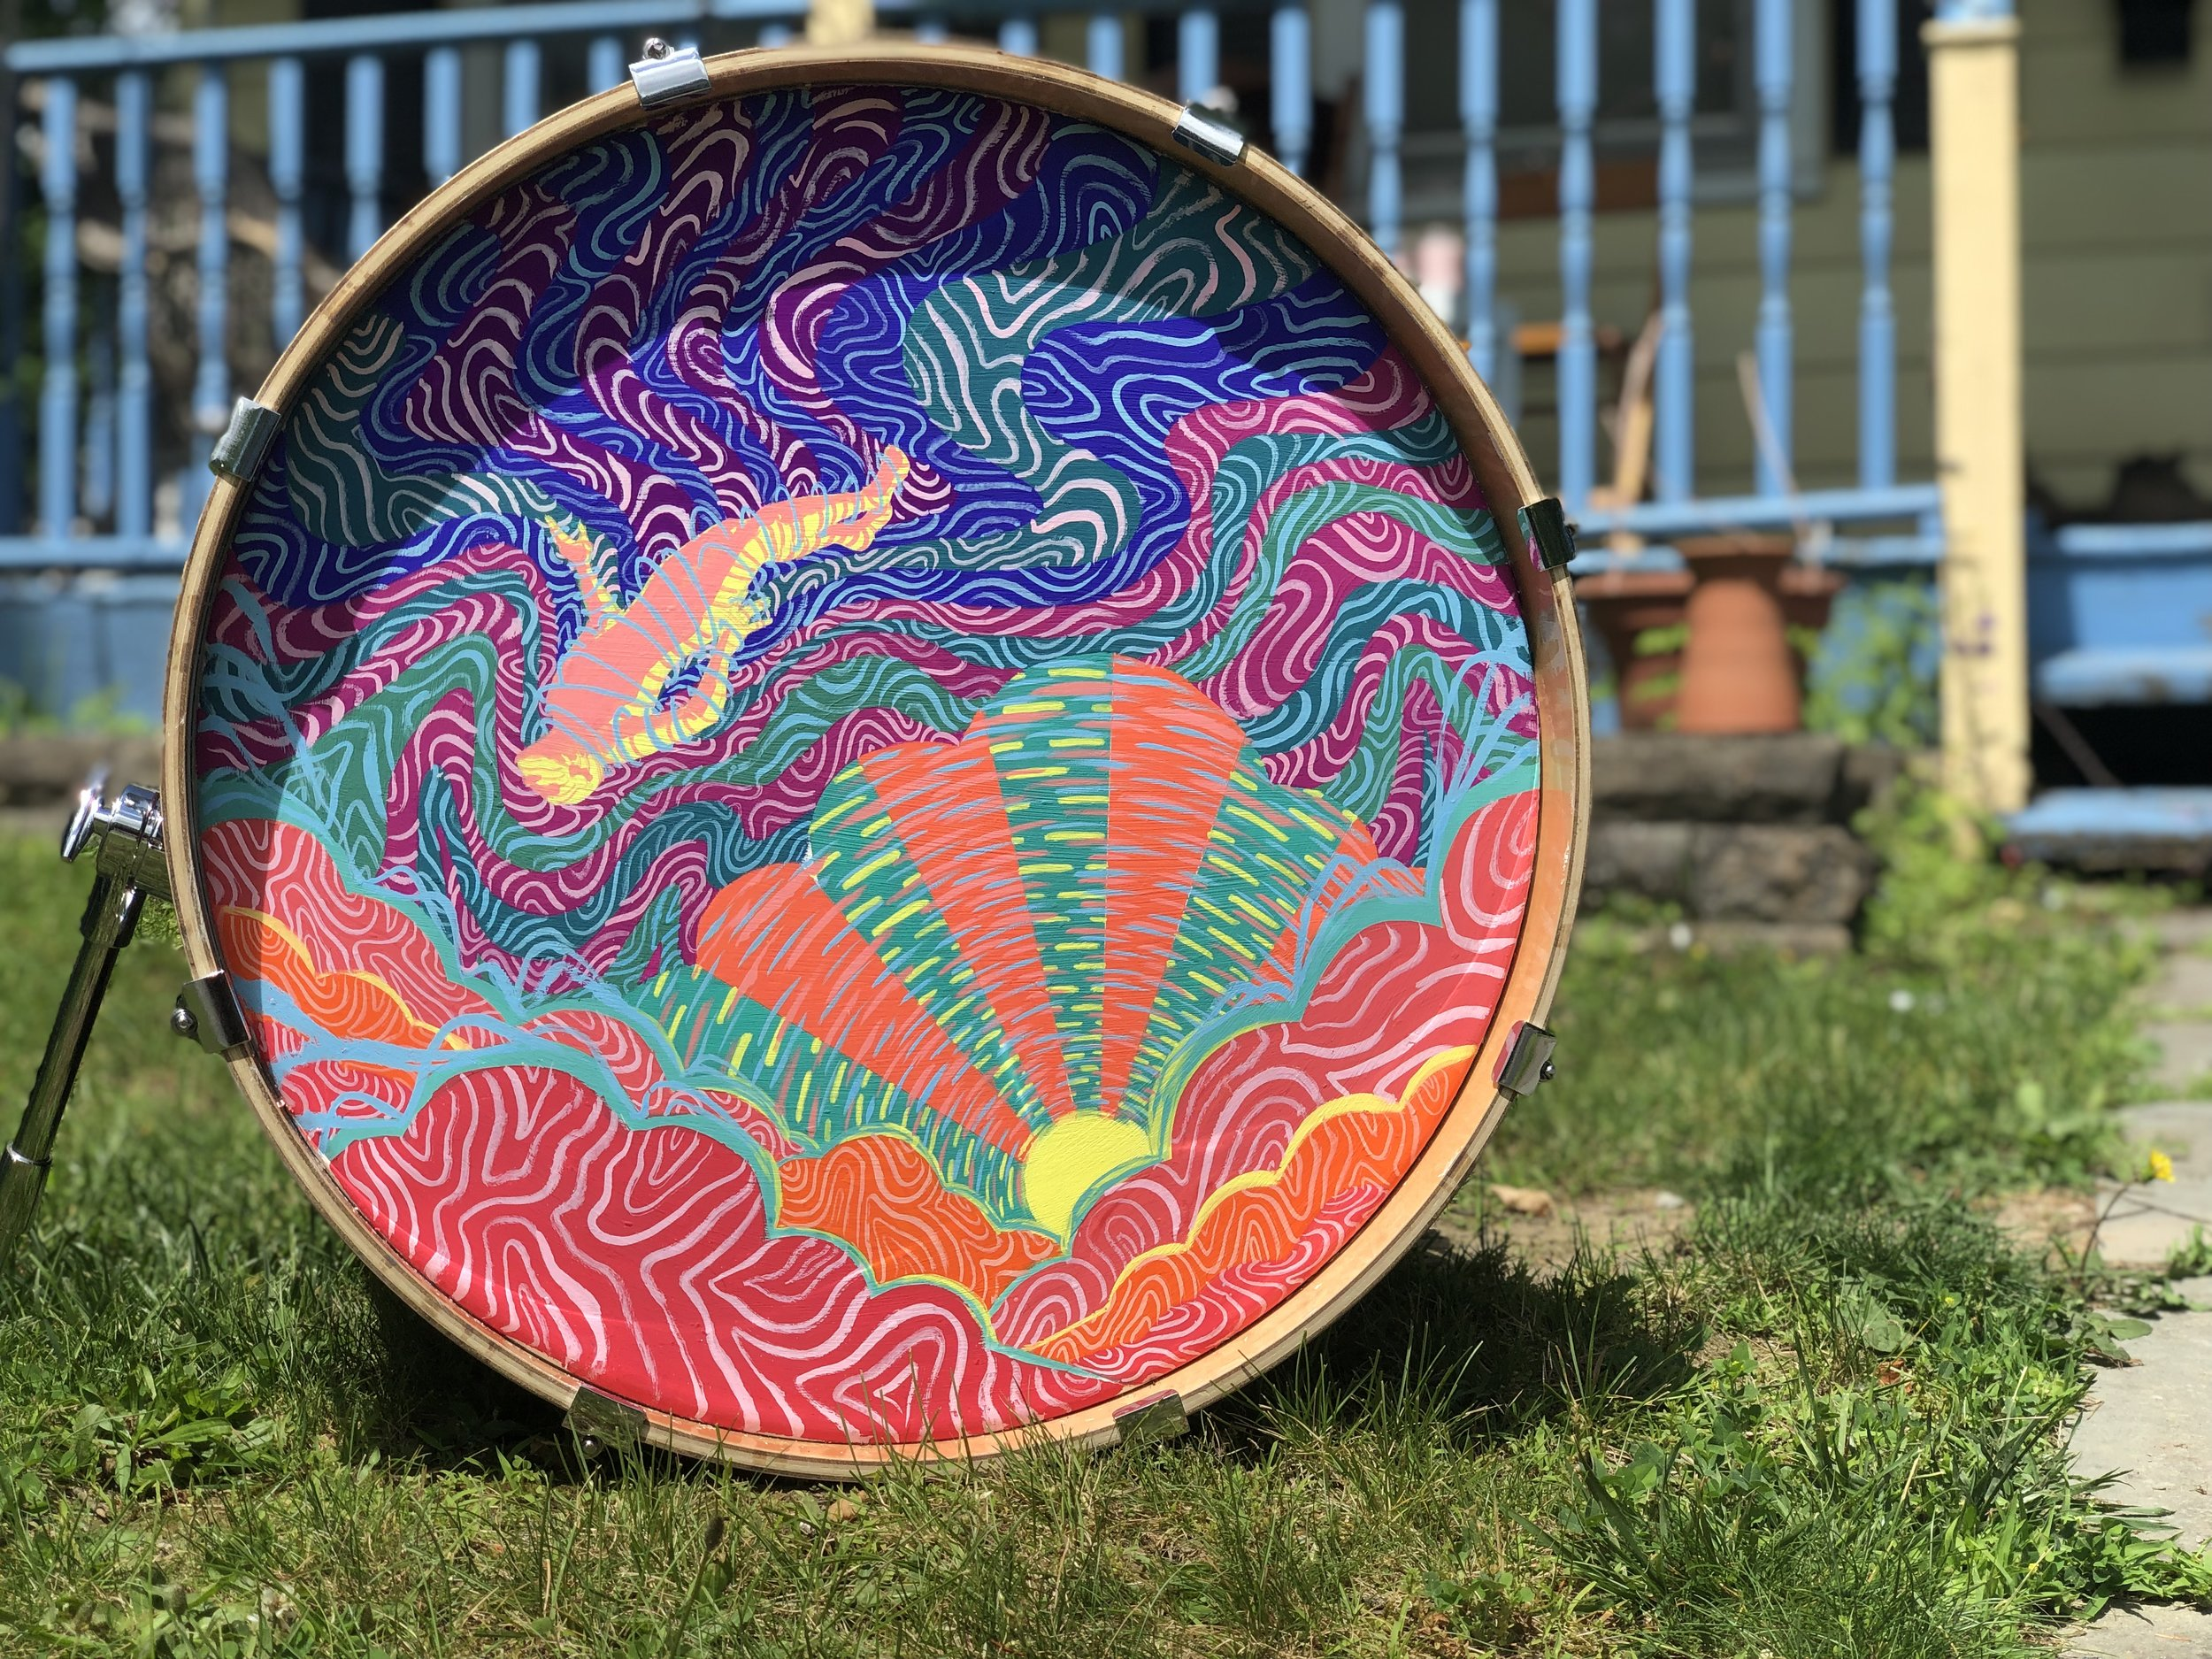 Kitch (2019), Gouache on a Drum Kit